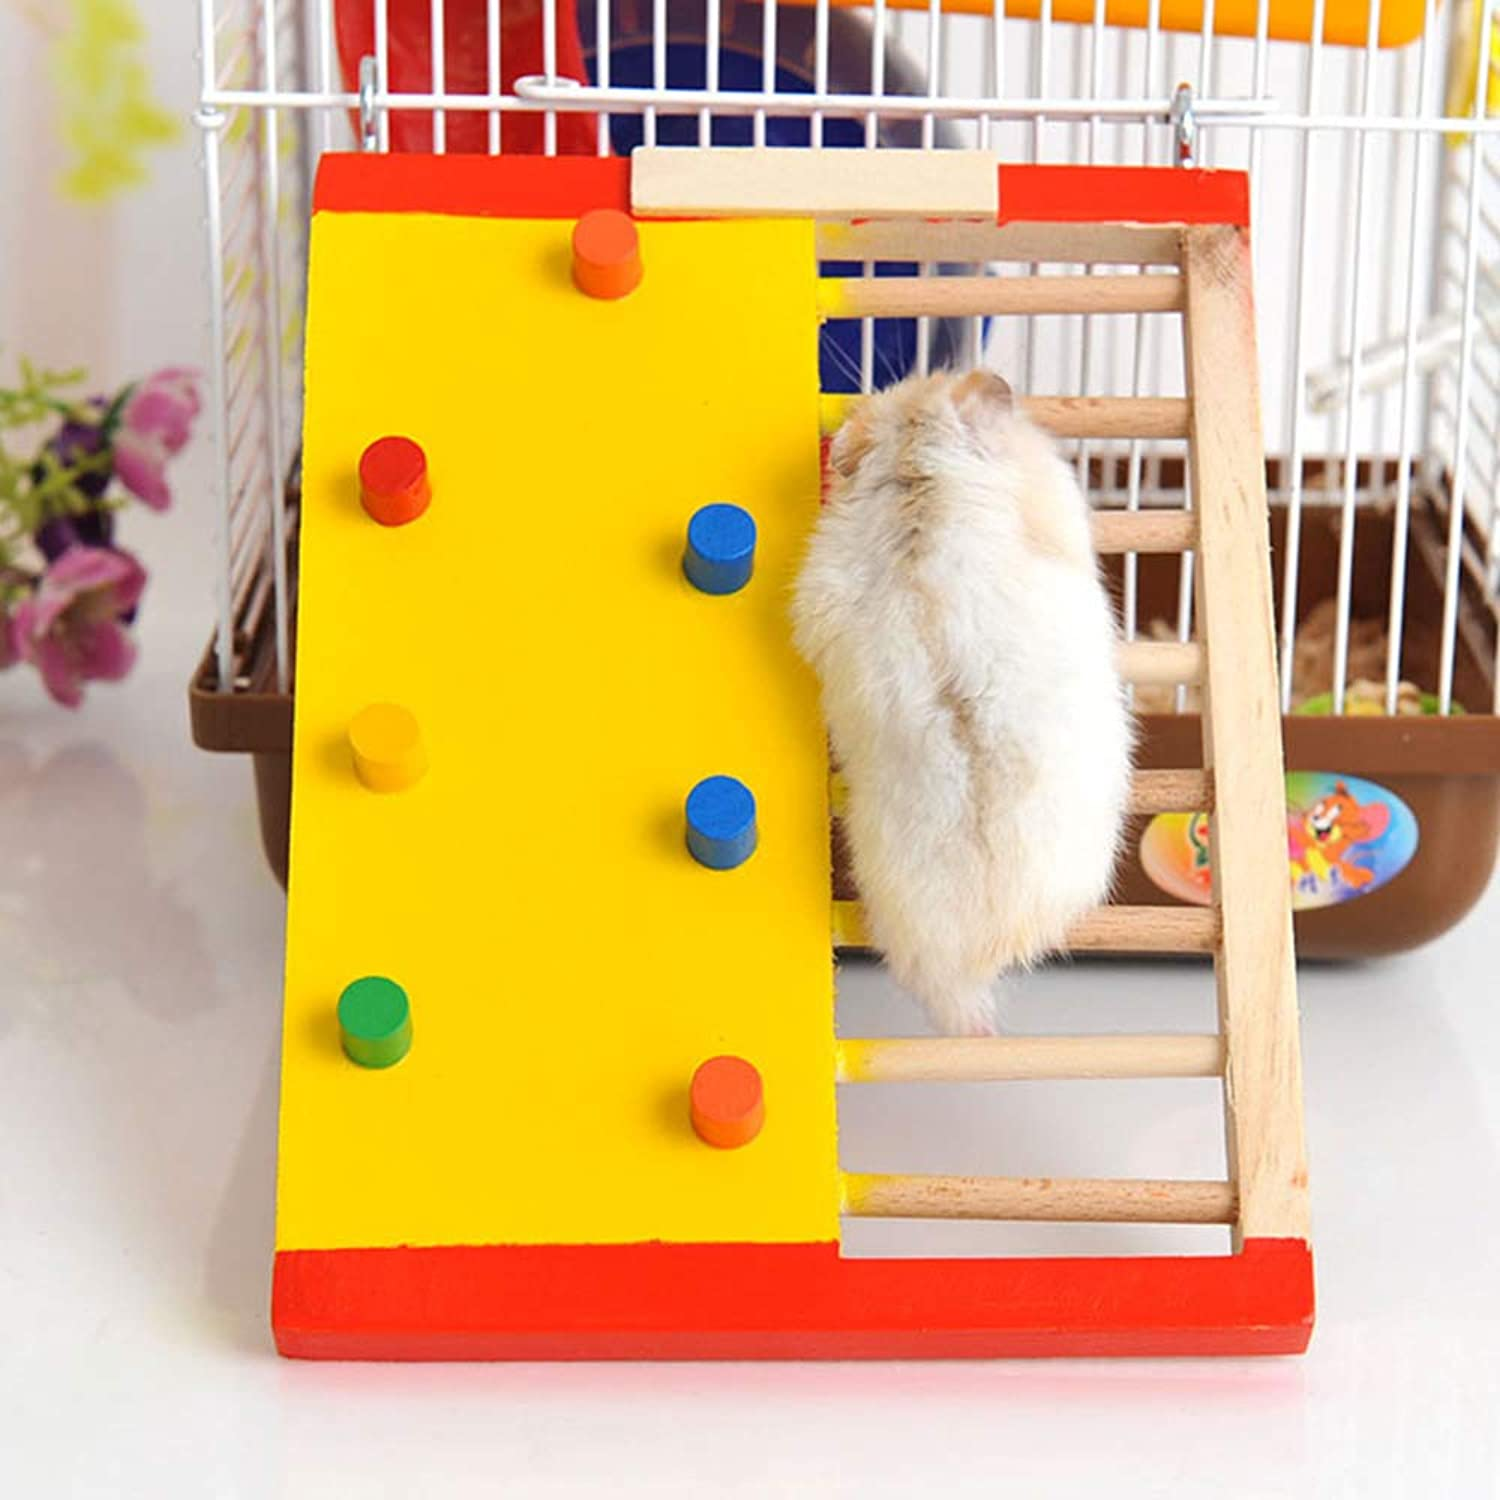 Pet Toy Hamster colorful Climbing Ladder Original Wooden Small Pet Dutch Pig Non-Slip Climbing Stairs Pet Supplies Wooden Toys